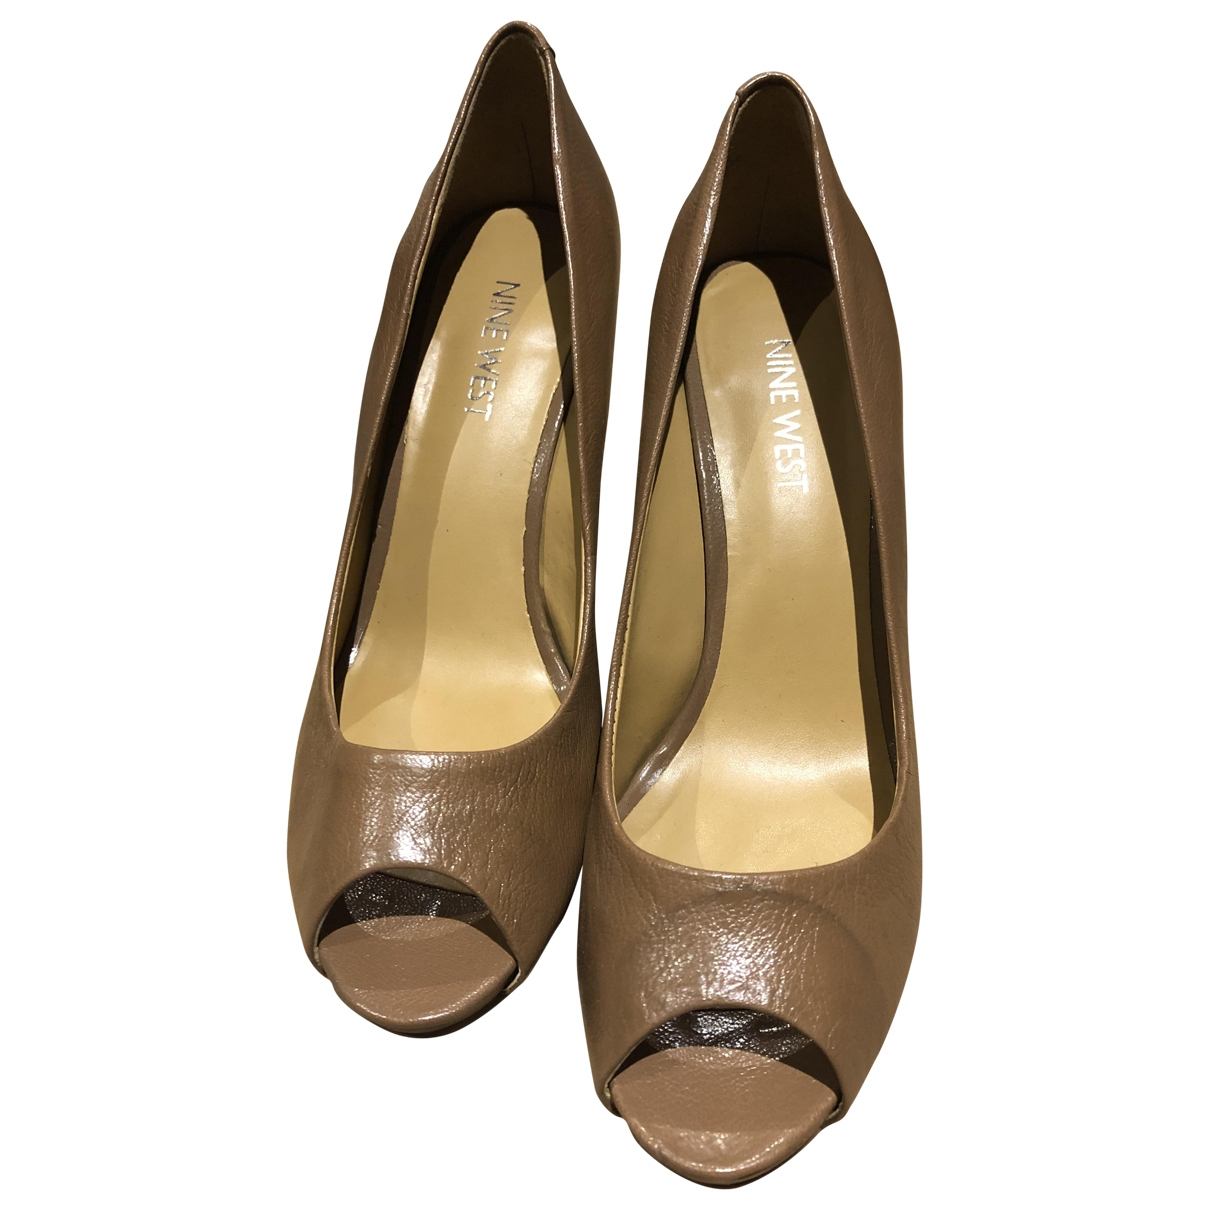 Nine West \N Camel Leather Heels for Women 35.5 EU